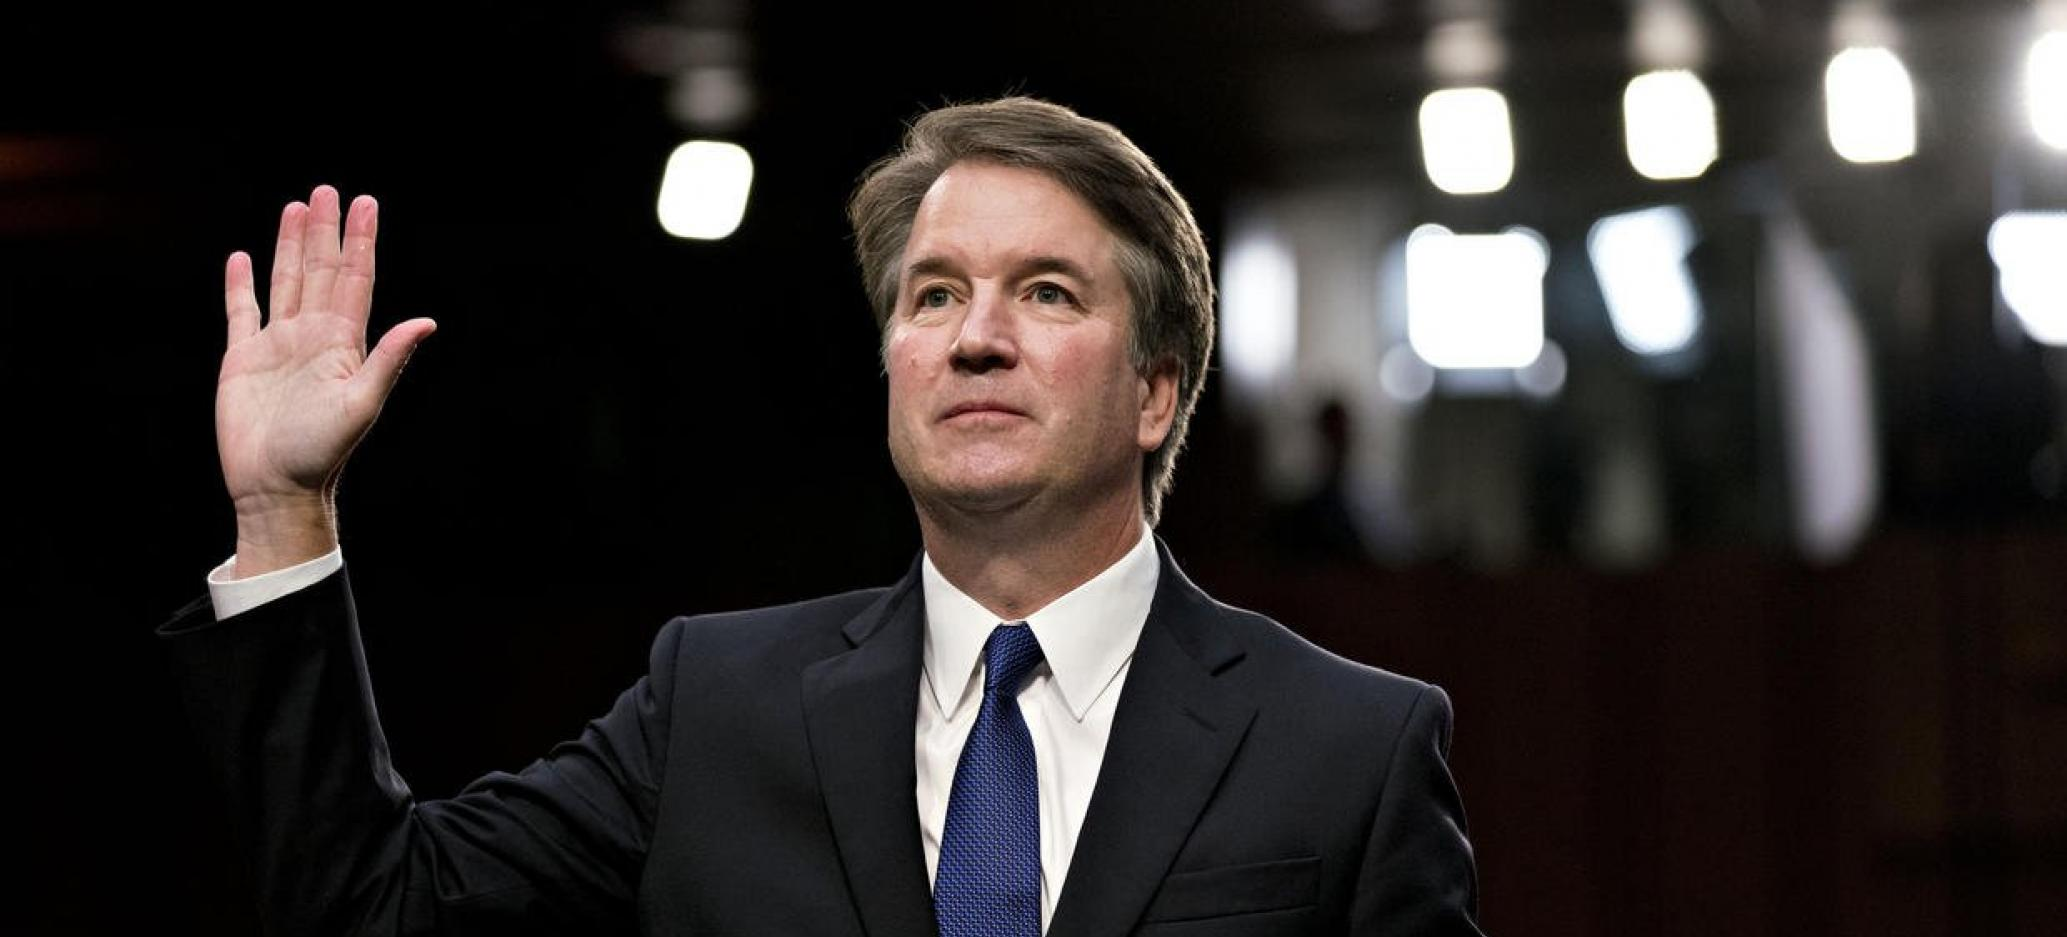 Senate Will Hold Public Hearing for Kavanaugh and His Accuser